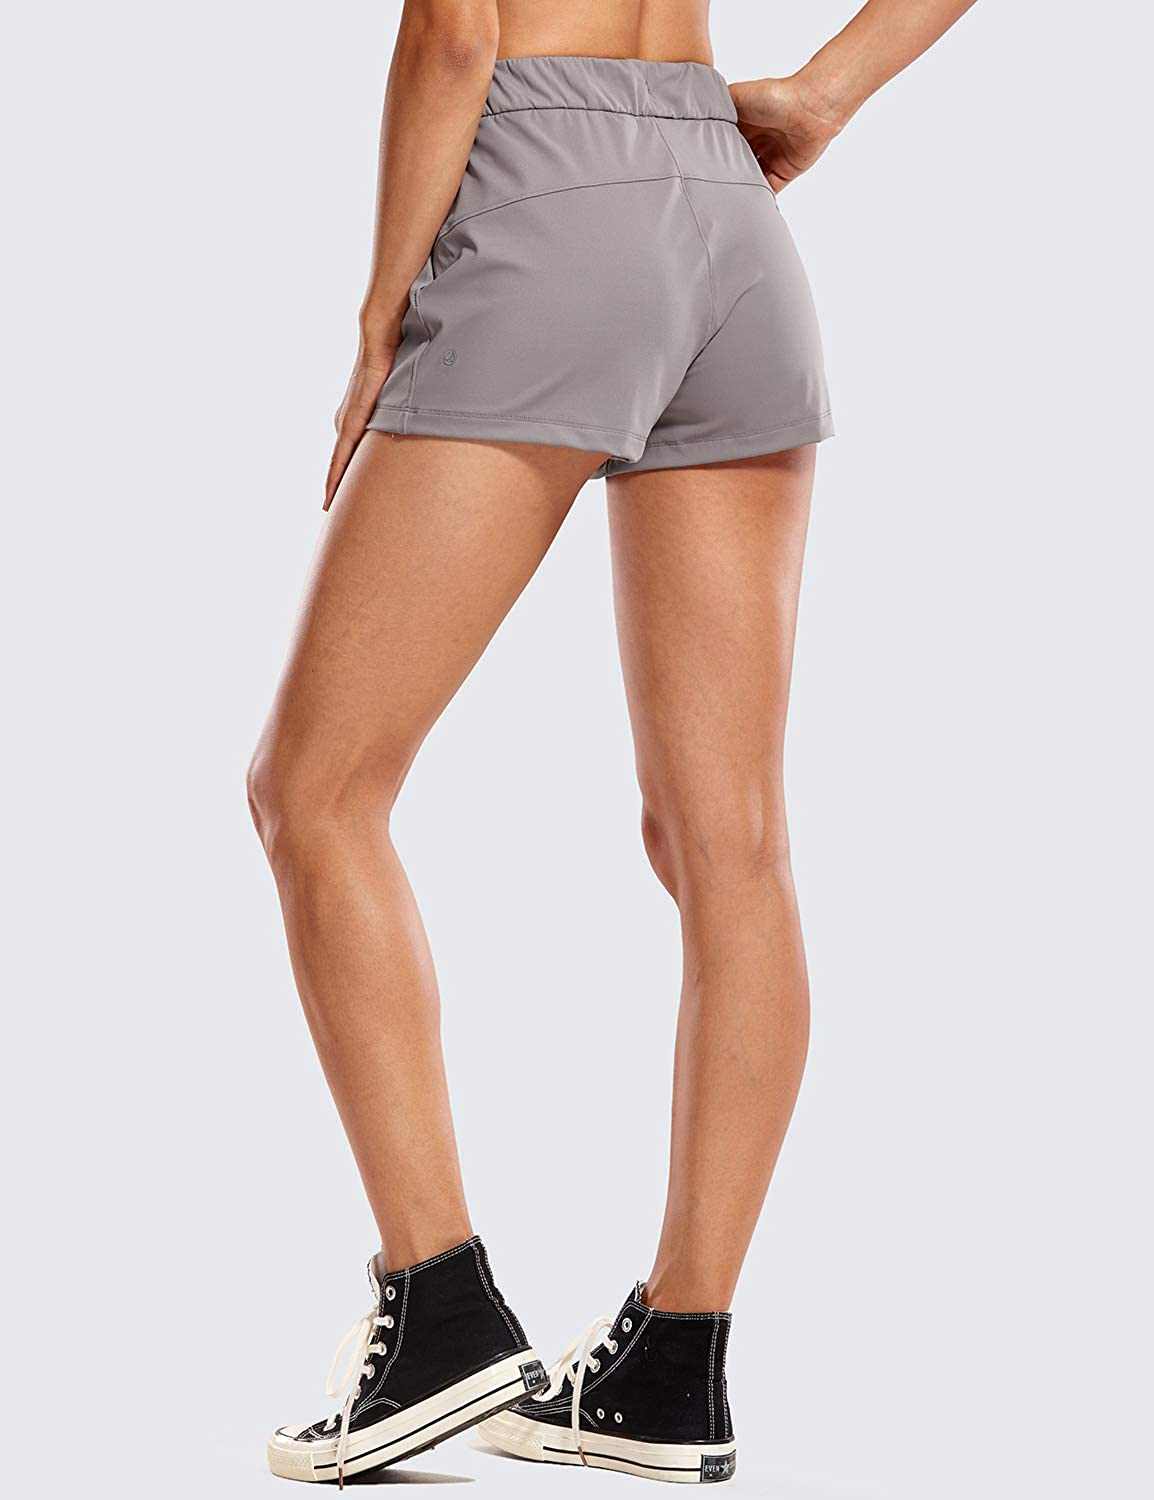 2.5 Inches CRZ YOGA Womens Medium Rise Relaxed Fit Sports Shorts with Pockets